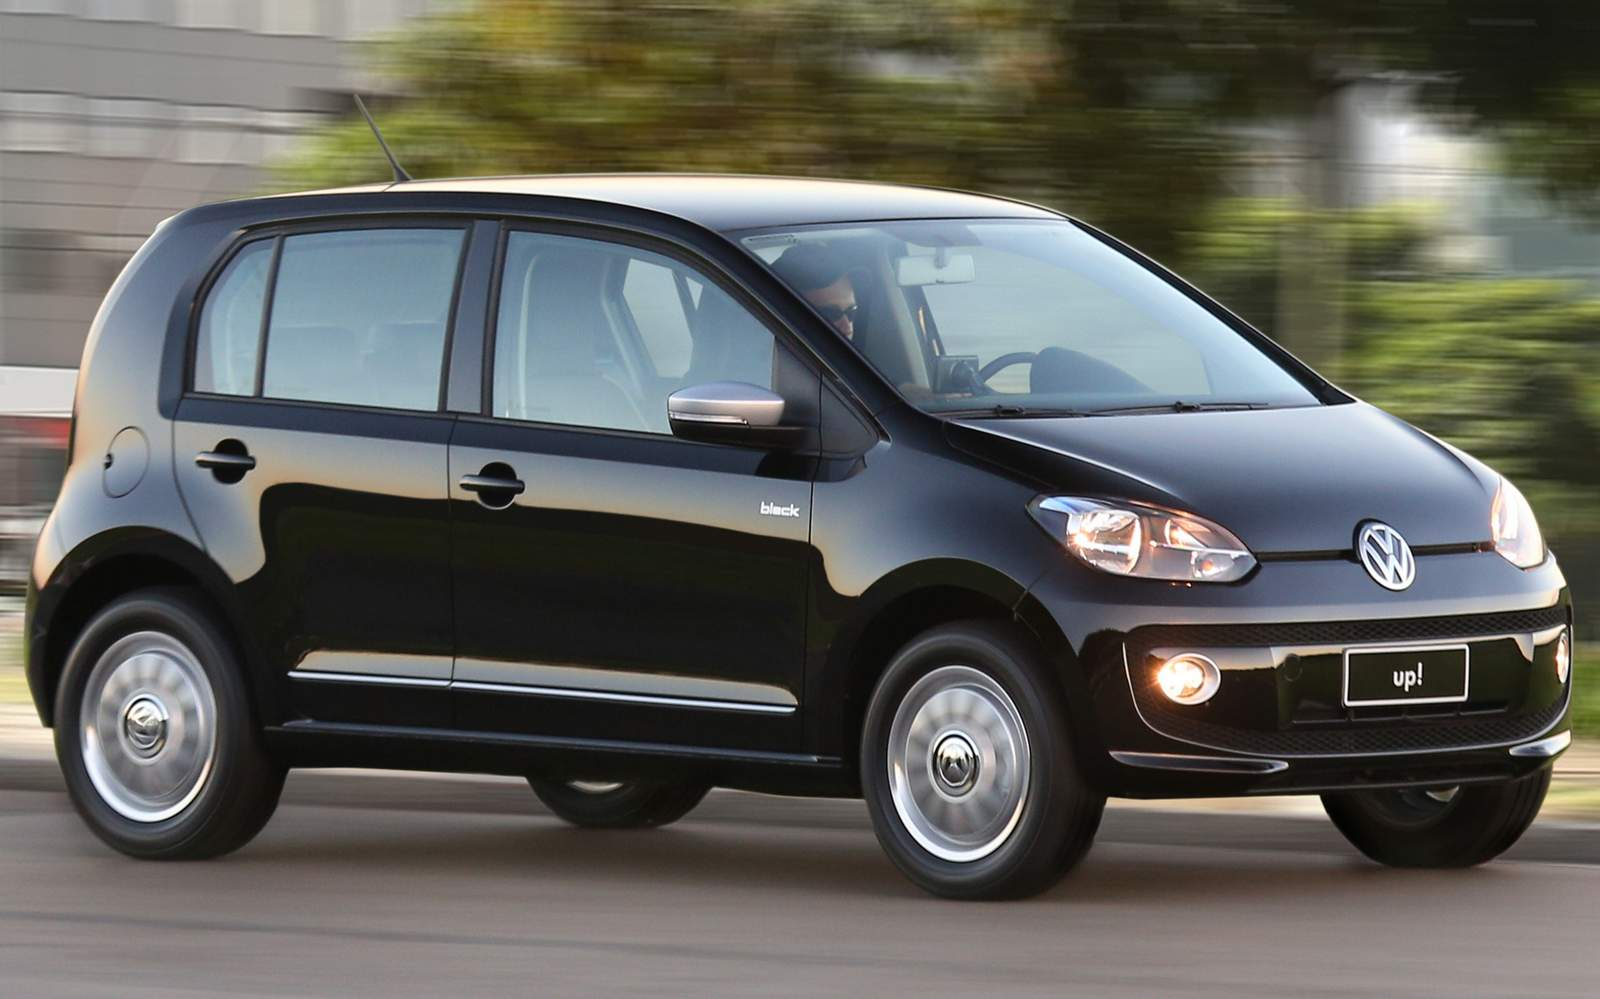 Volkswagen Black-up! 2014